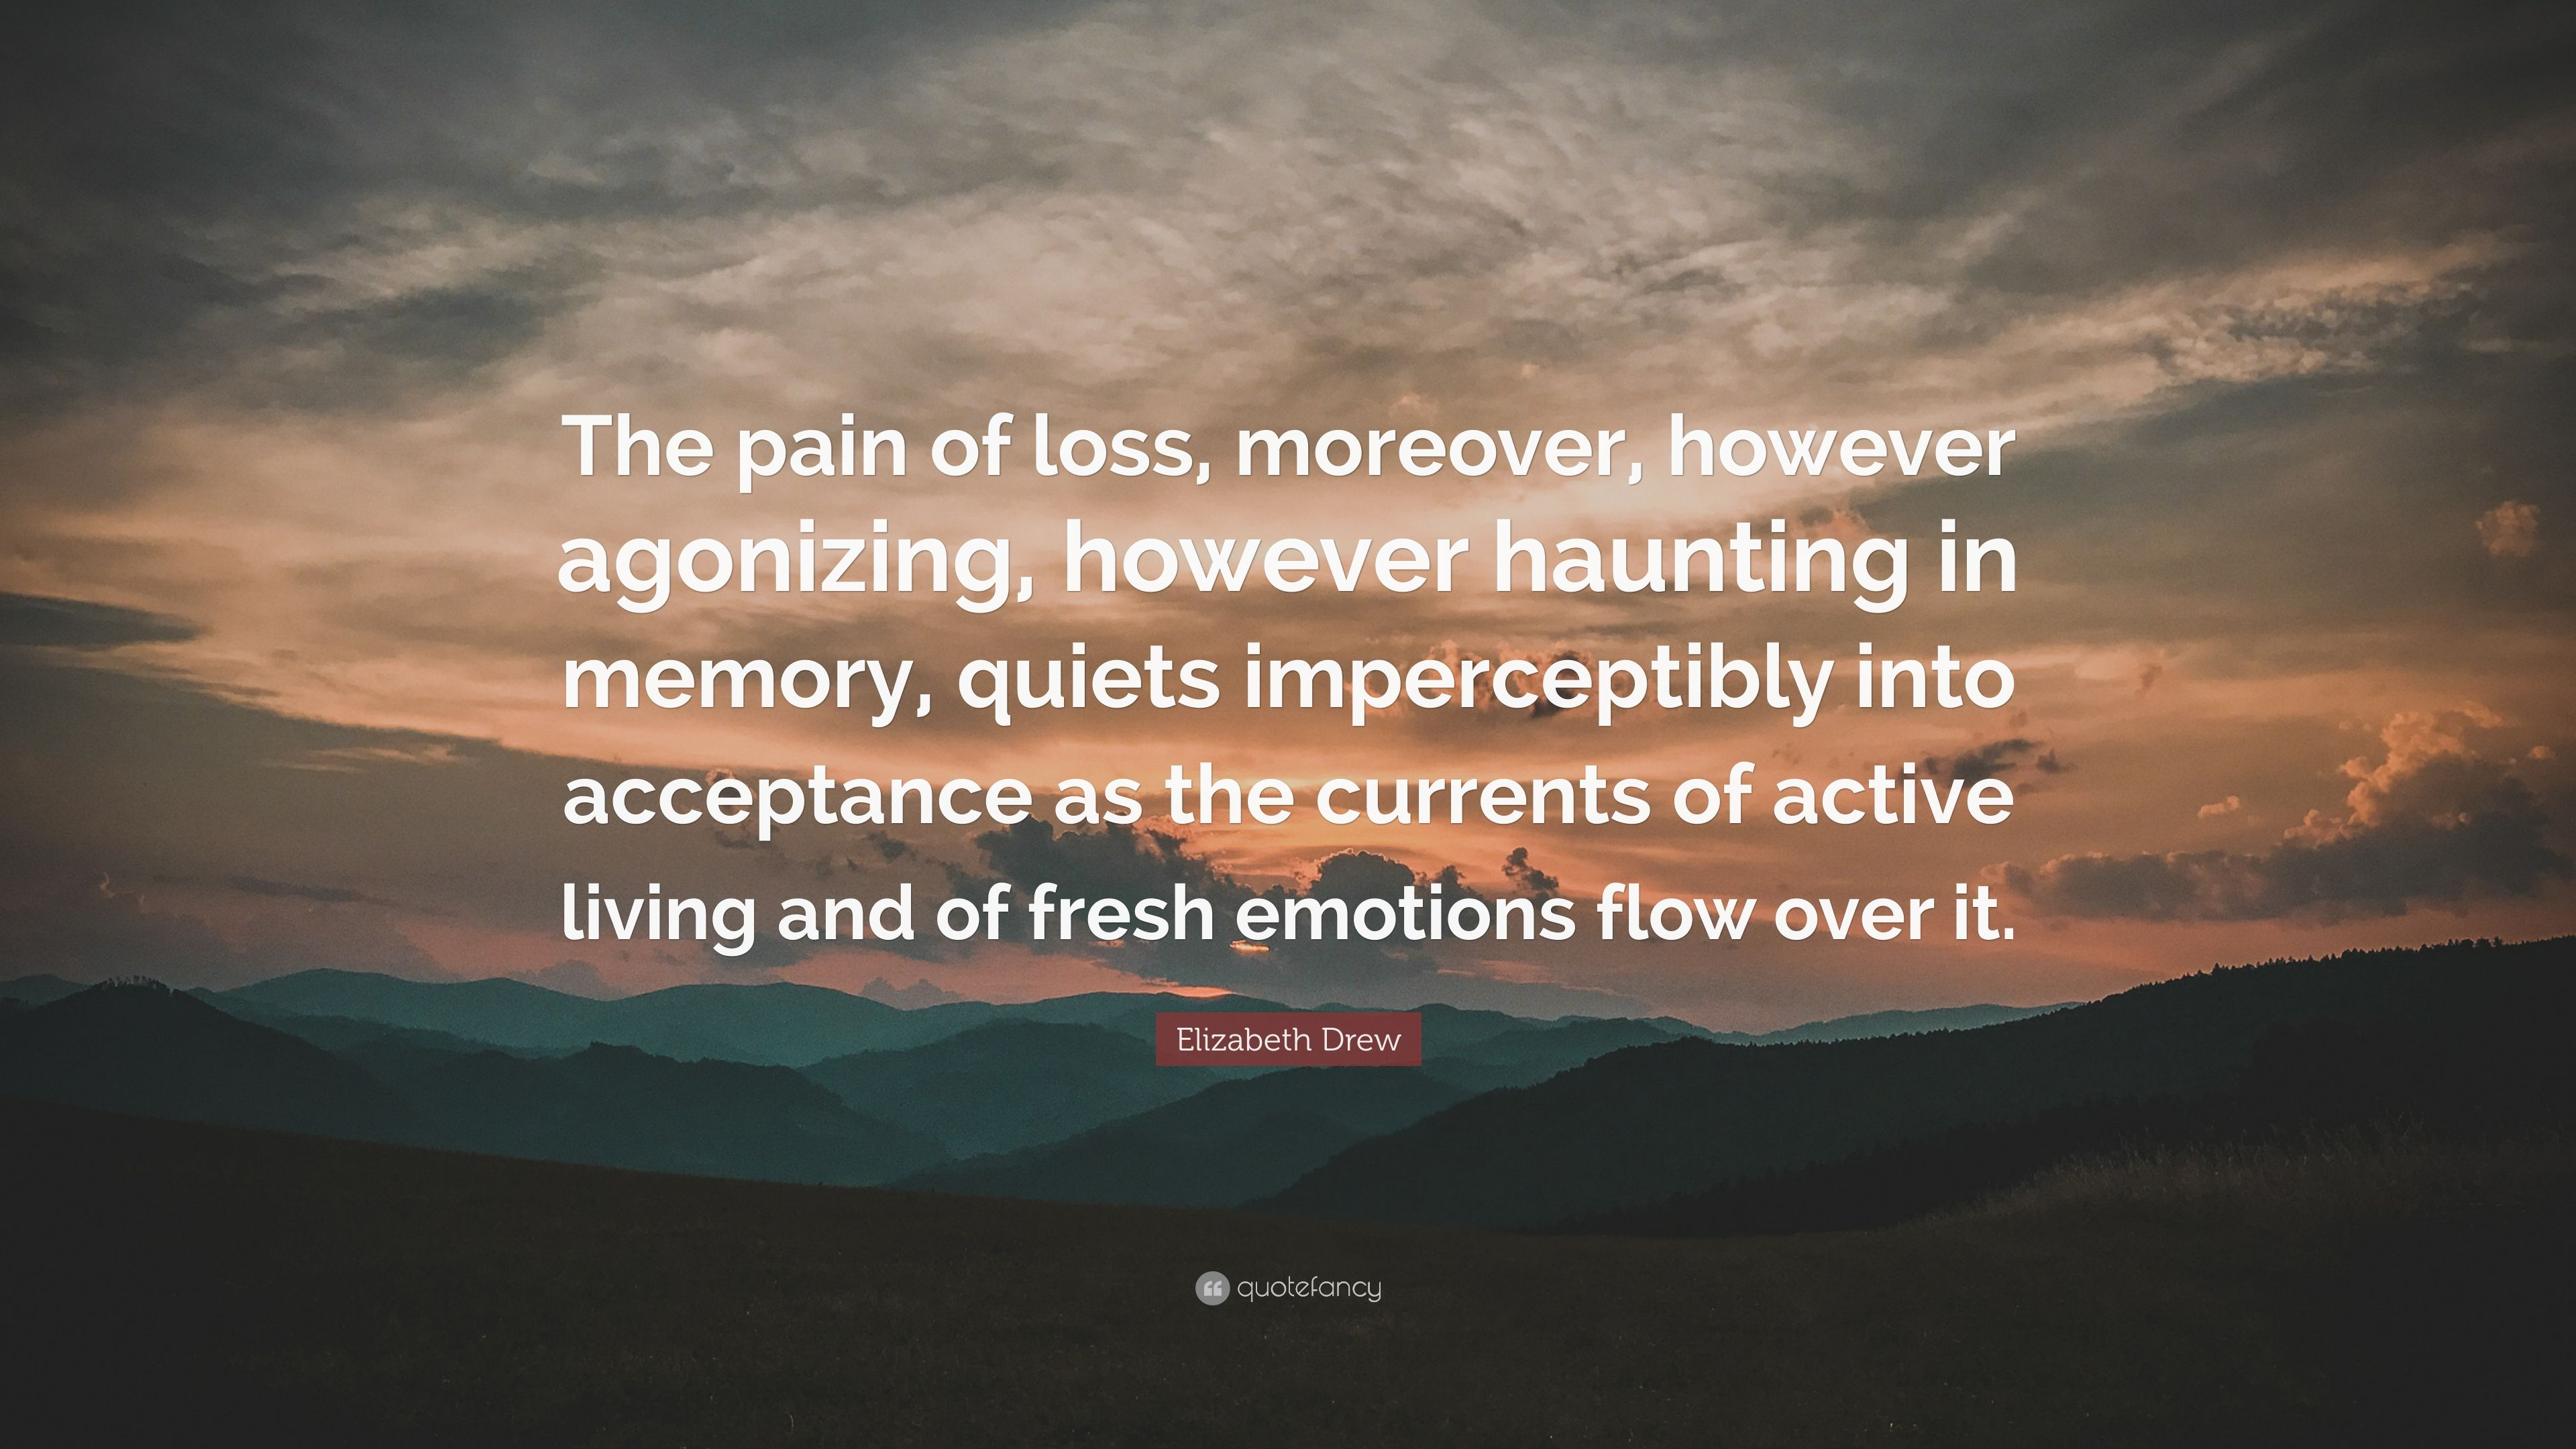 quote by elizabeth drew on haunting memories post the pain of loss agonizing haunting memory imperceptibly acceptance currents active living fresh emotions